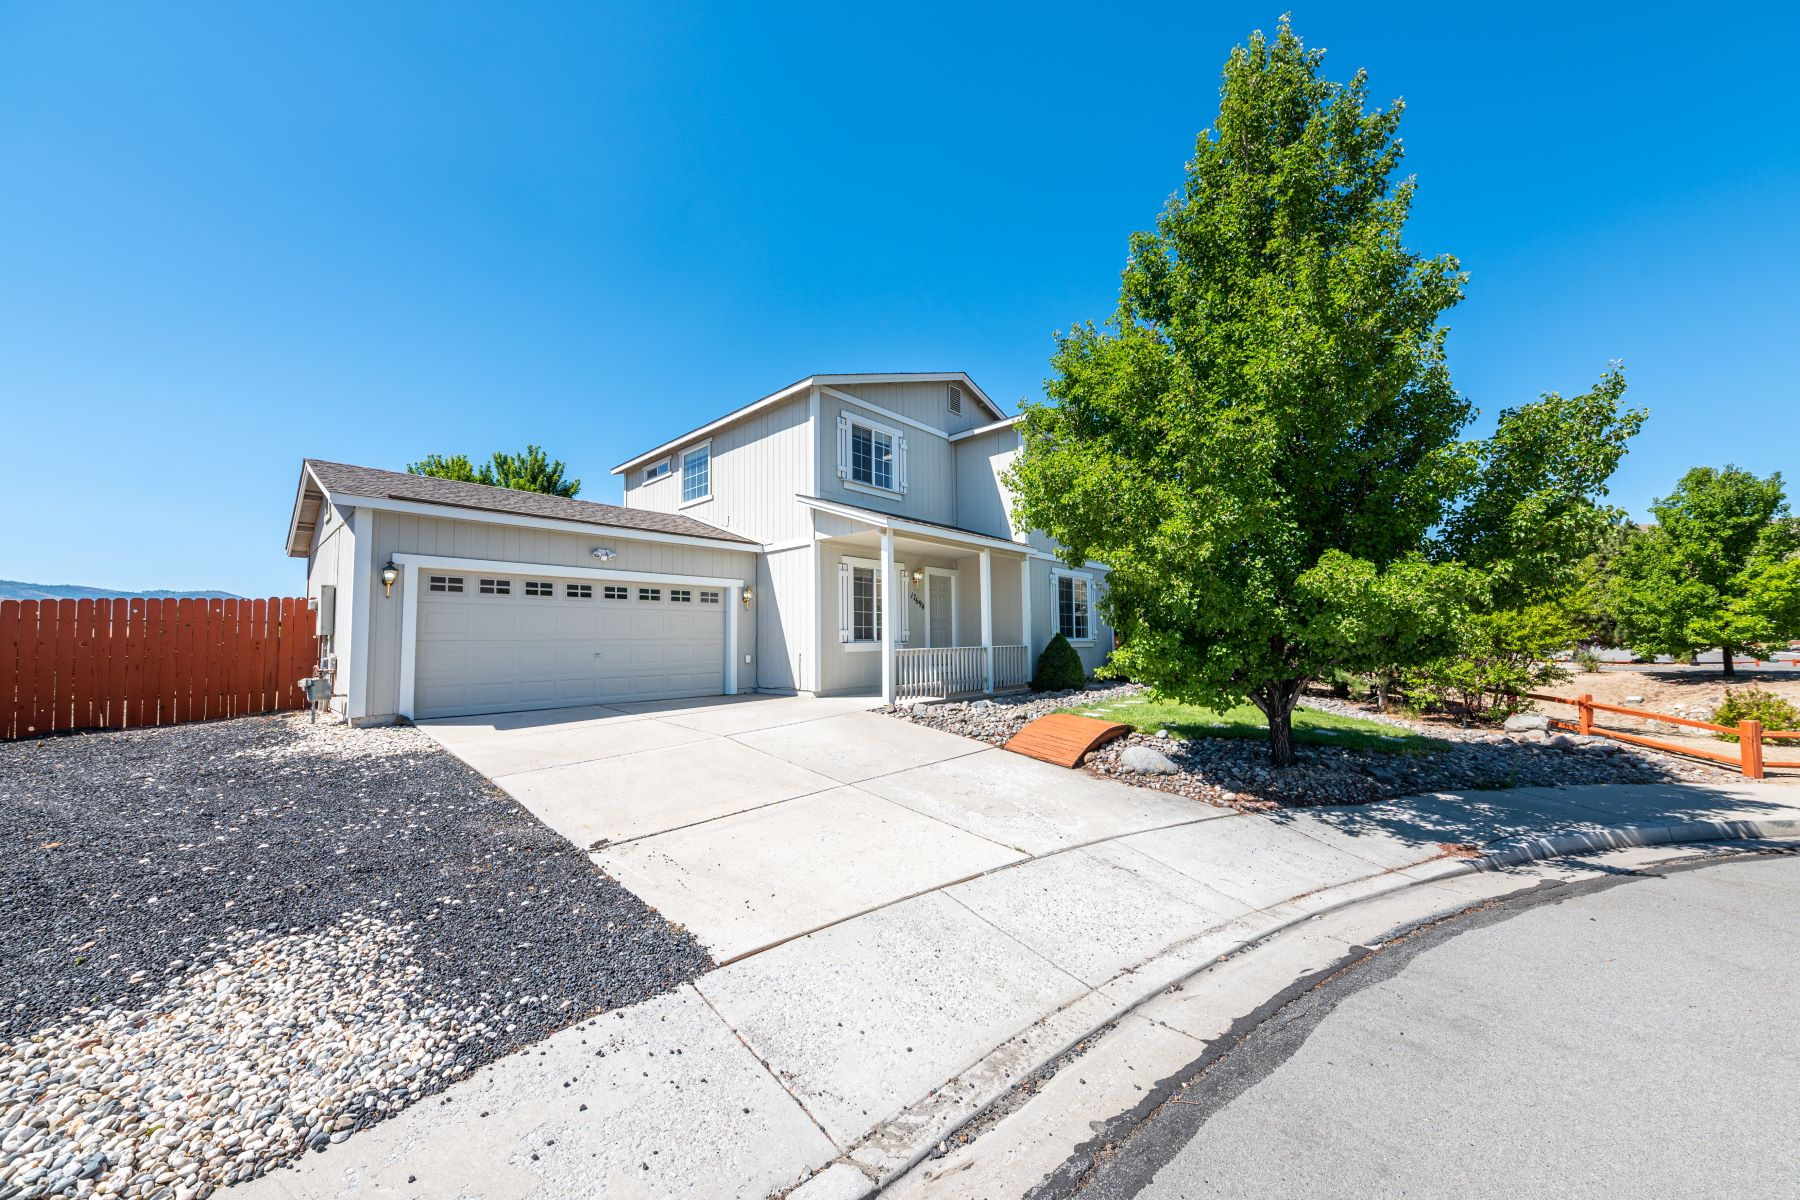 Single Family Homes for Active at Woodland Village residence 17694 Alexandria Ct Reno, Nevada 89508 United States